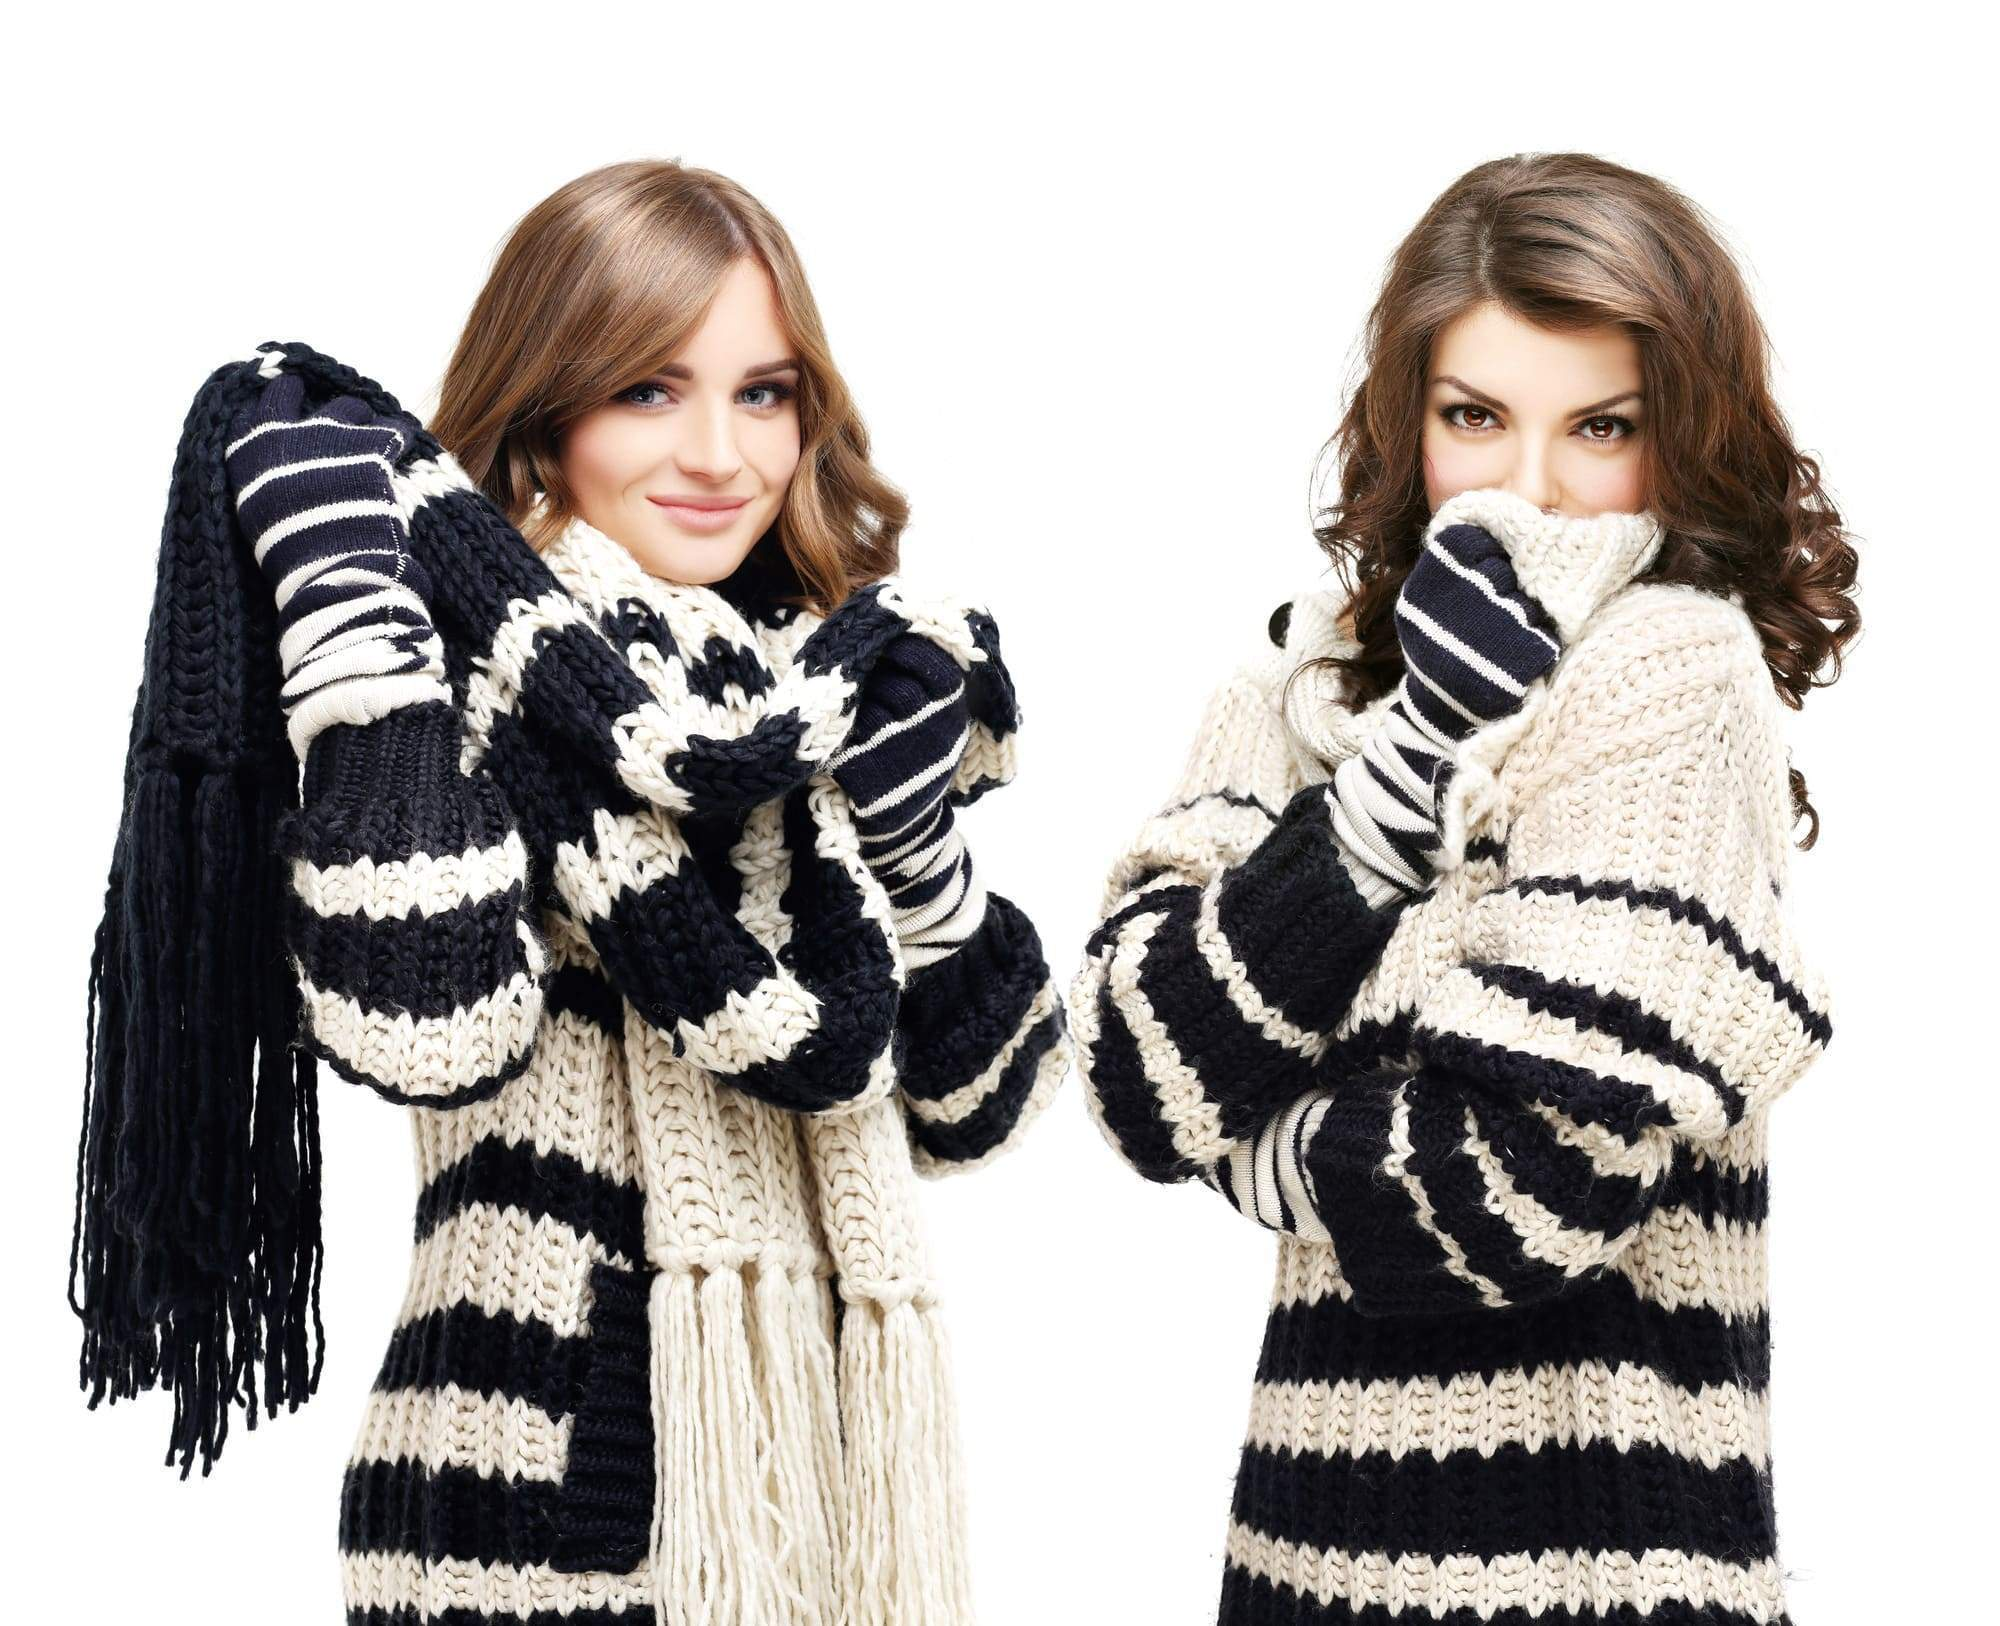 Cute Even in Snow: Look Great With These Fun Winter Fashion Ideas